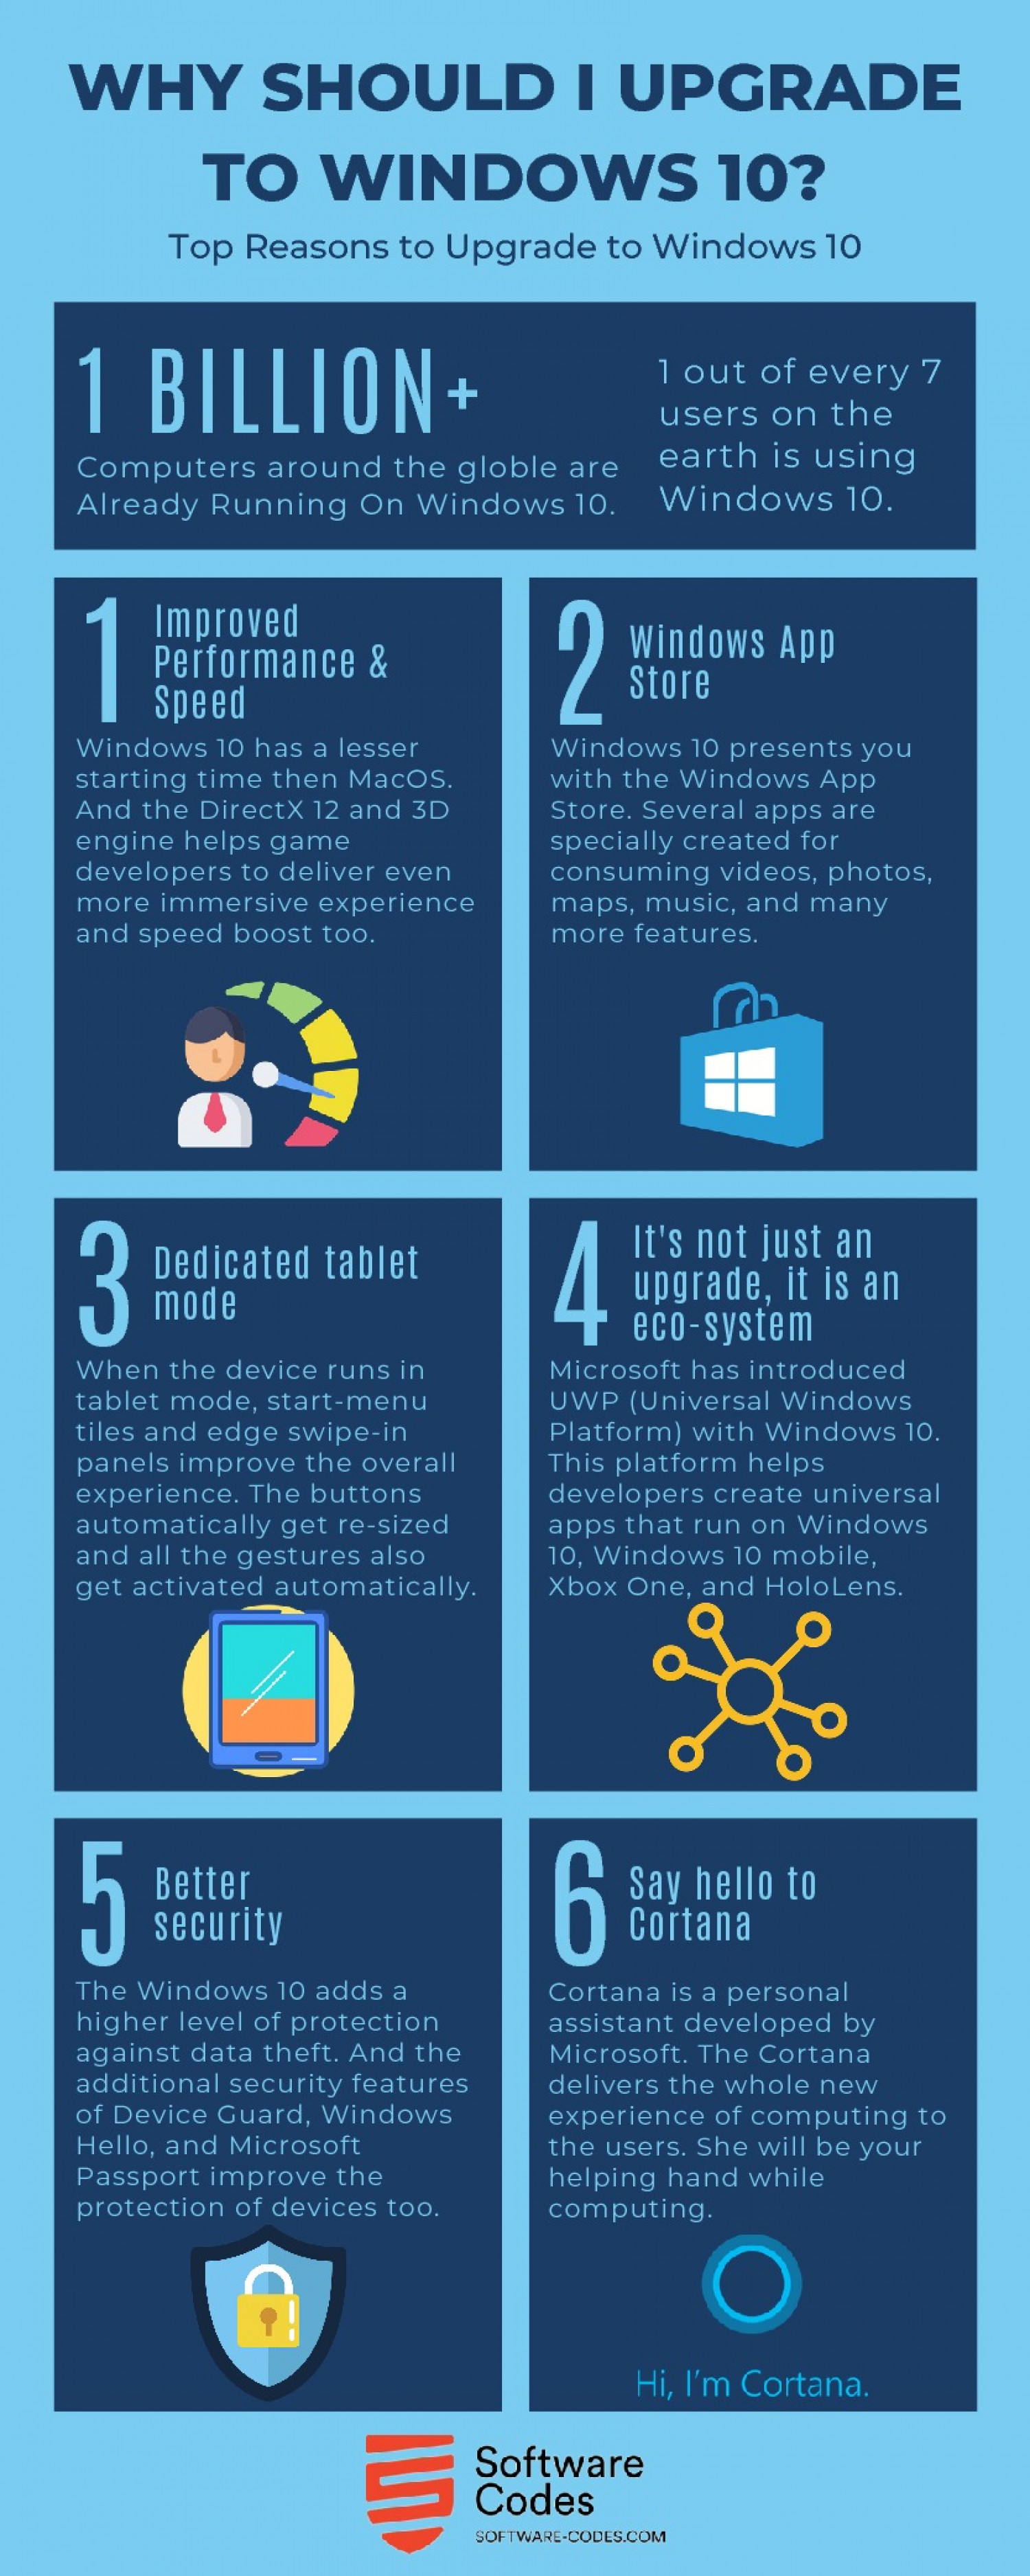 Top Reasons: Why Should I Upgrade to Windows 10? Infographic